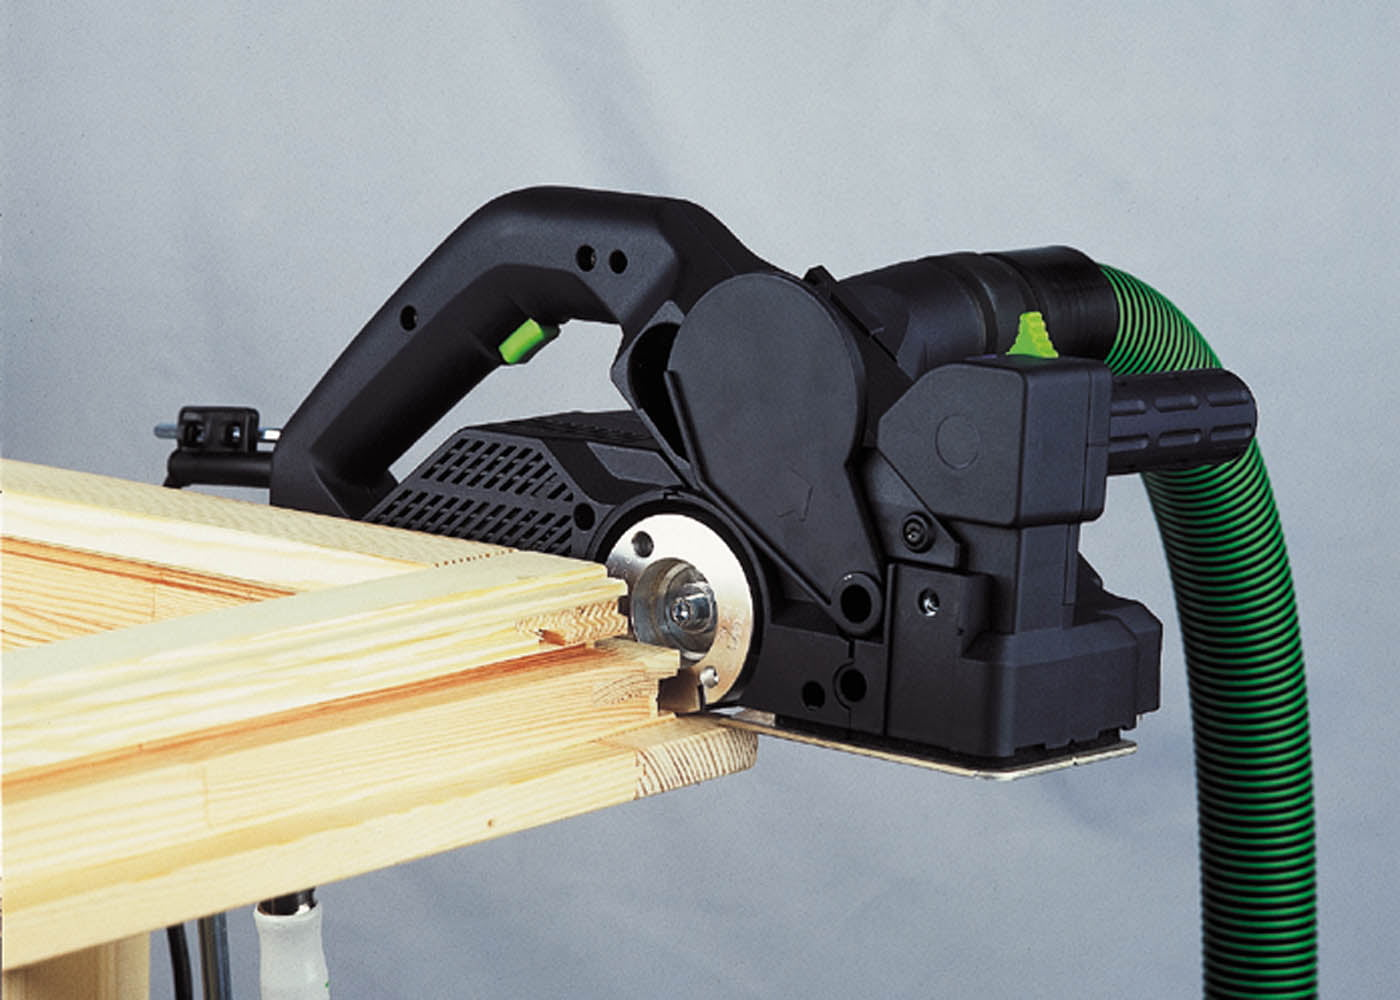 Large planer with interchangeable heads HL-85